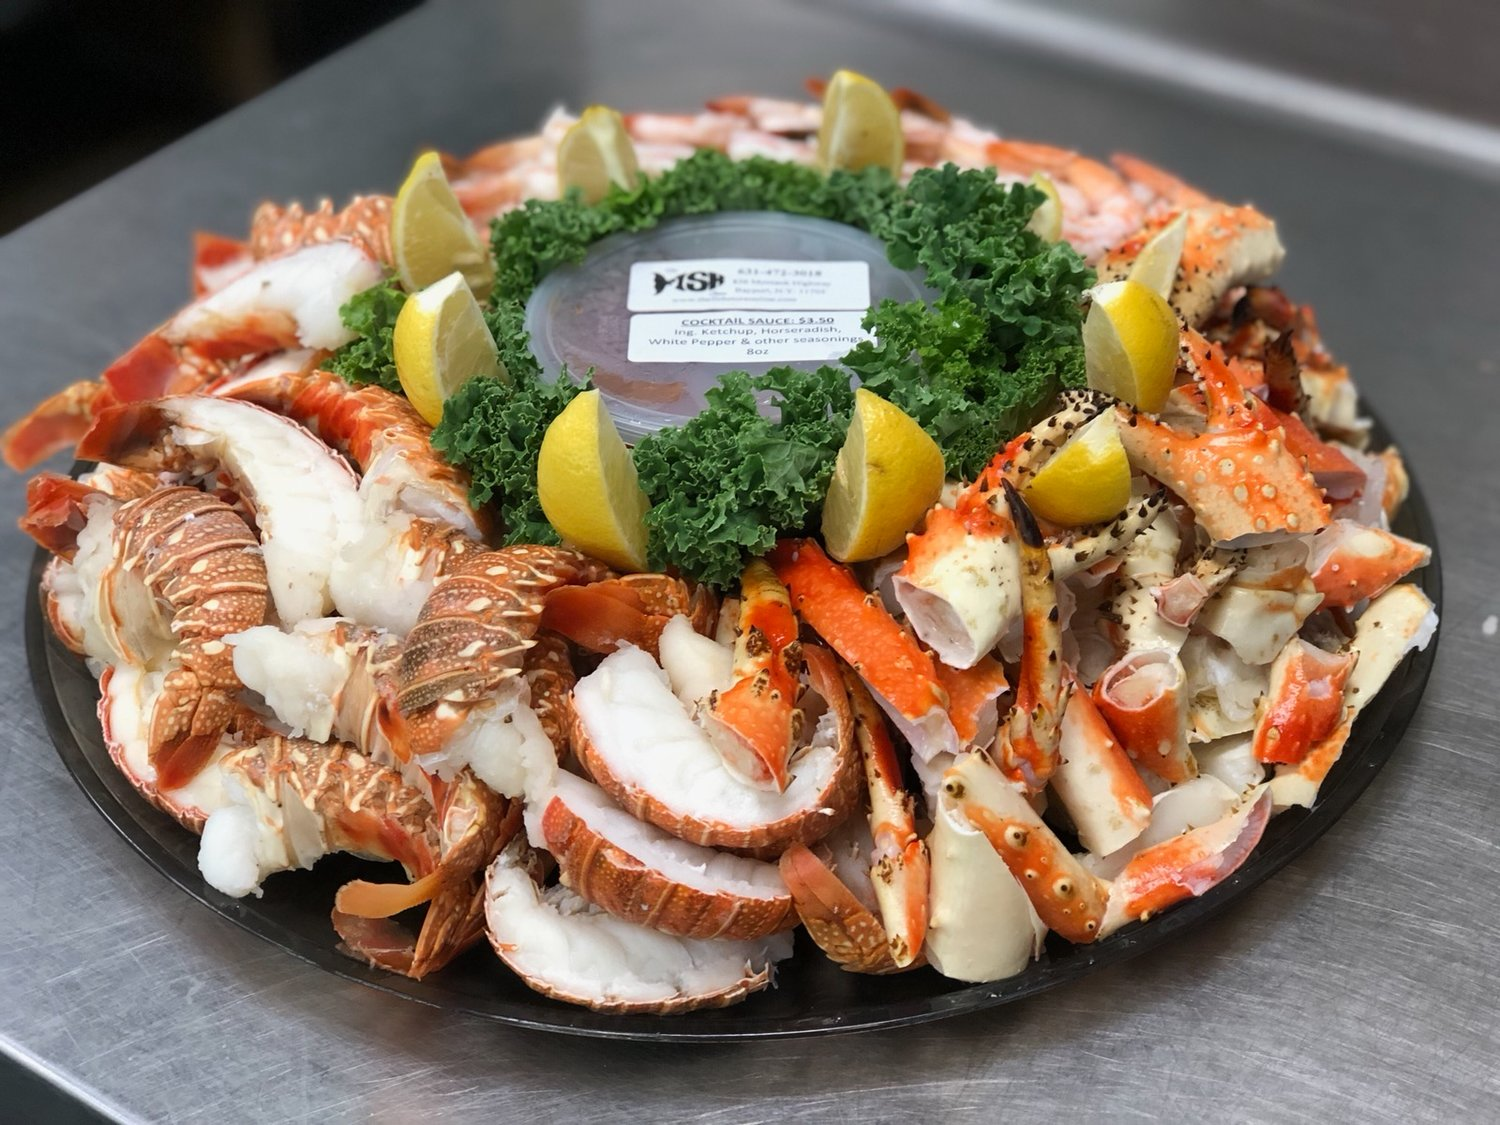 Grab seafood and wings from the Fish Store this year.